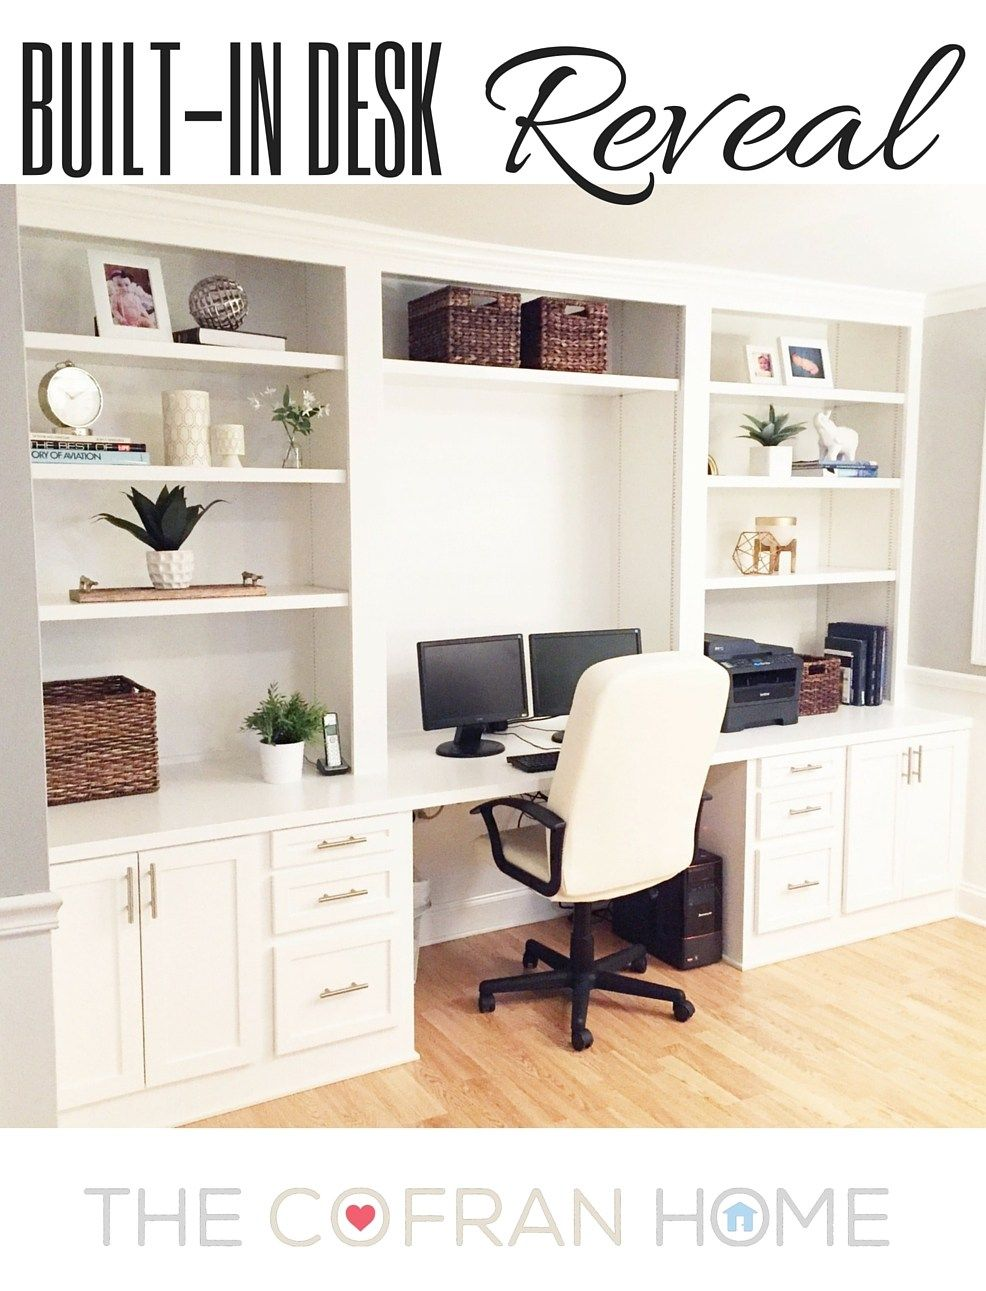 Preferred Built-In Desk Reveal | Pinterest | Desks, Room and Built ins UW32